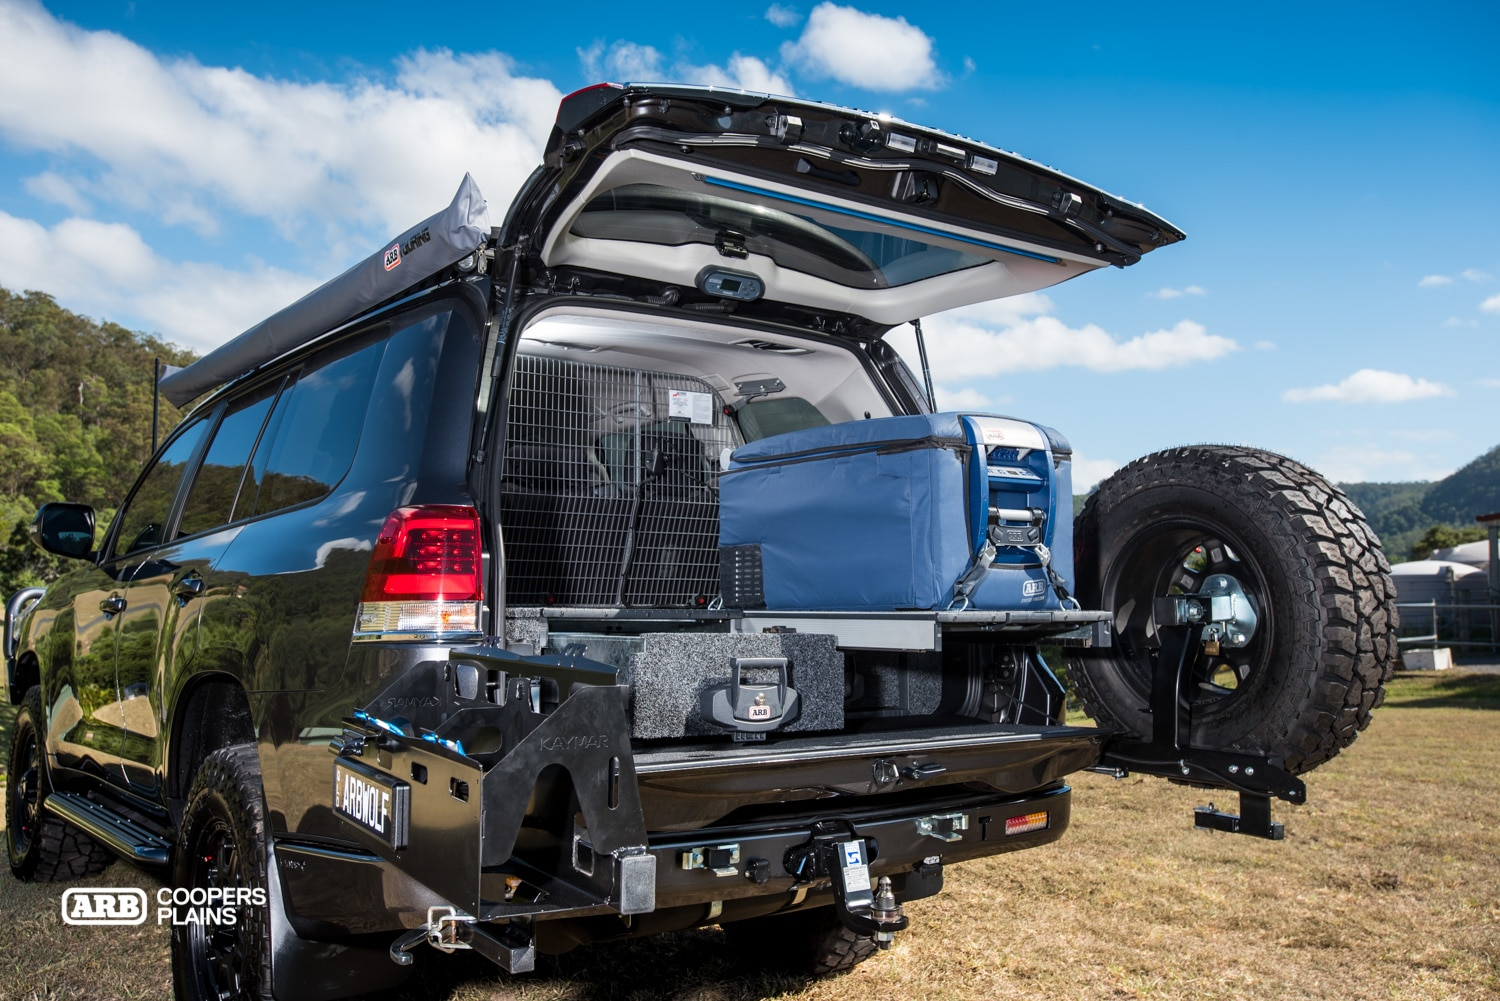 Feature Grey Wolf 200 Series Landcruiser Arb Coopers Plains Toyota Land Cruiser Moving To The Back Of Car There Is Something Special Hidden Away Underneath Outback Drawer System And Cargo Barrier A Kaizen Compressor Bracket